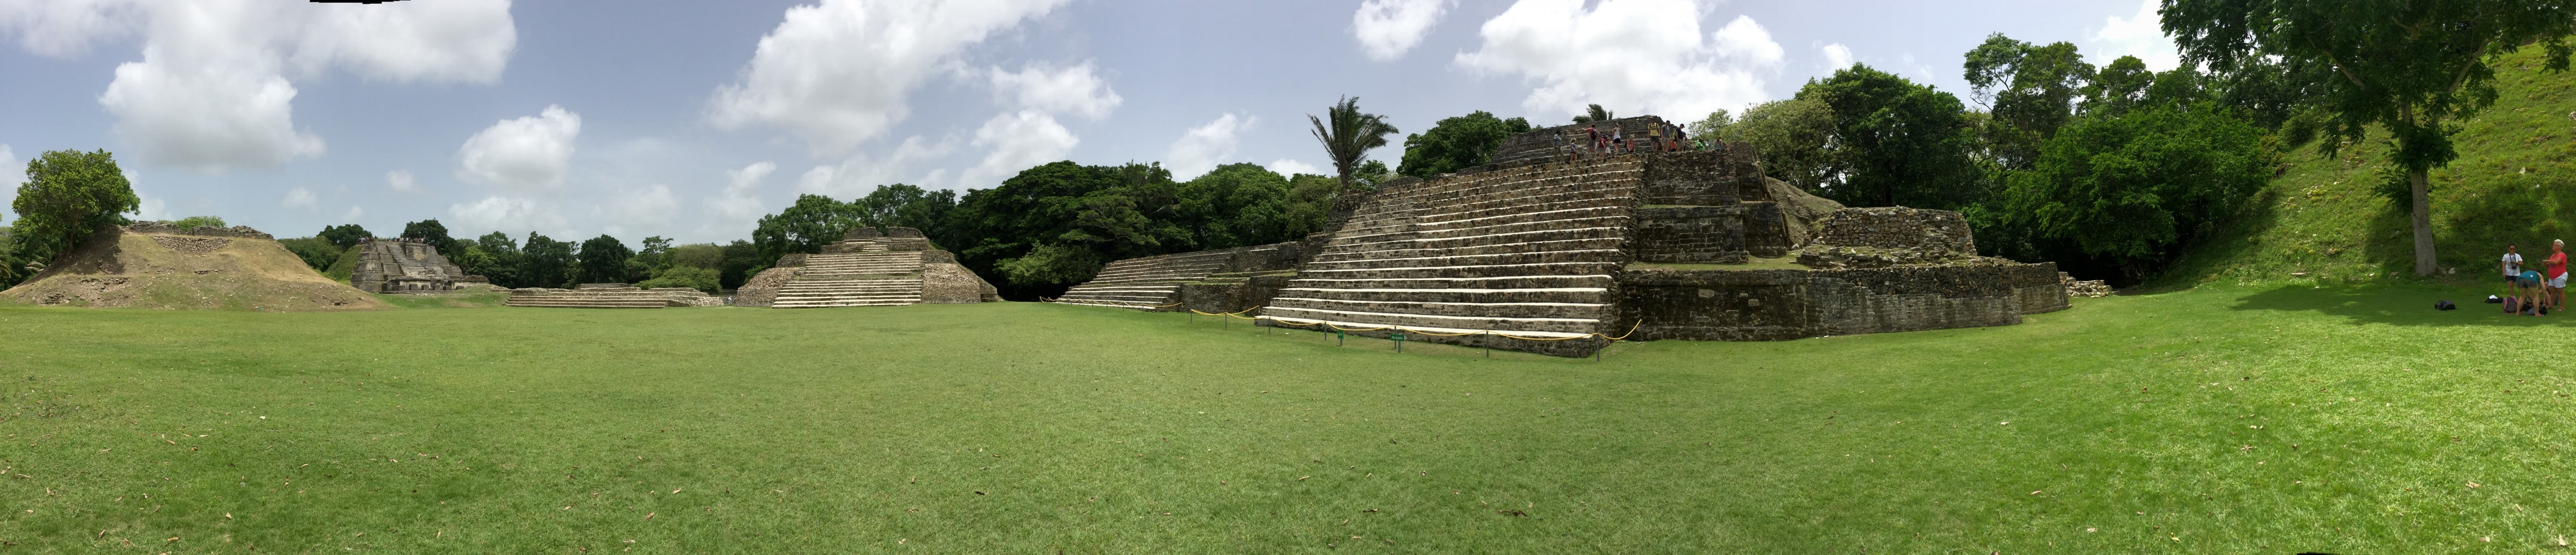 Altun-Ha panoramic 2